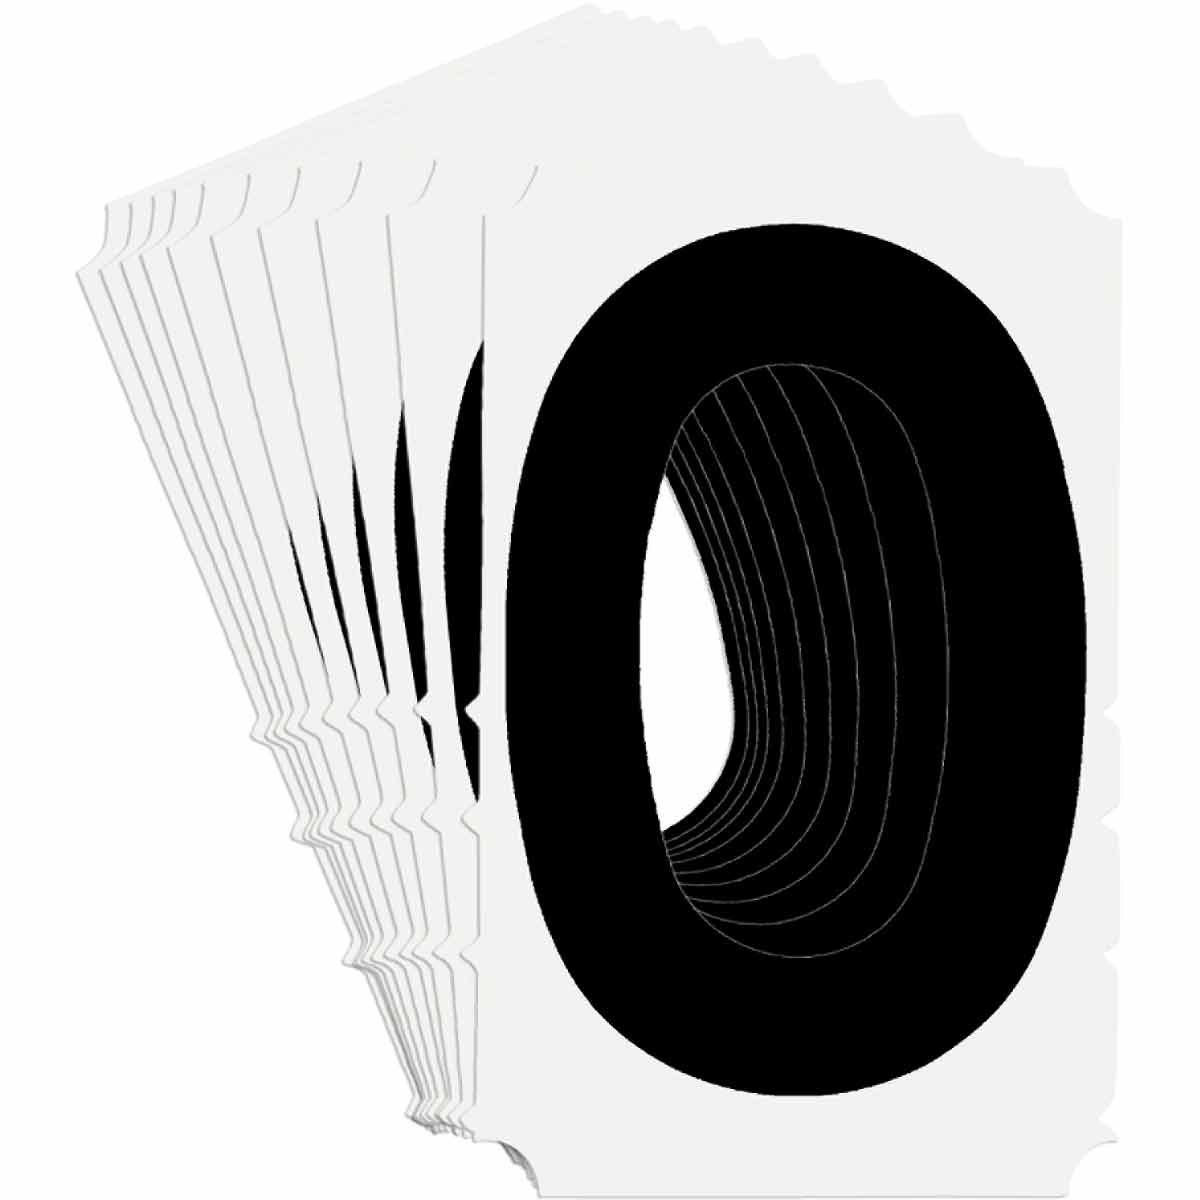 Brady® Quik-Align® 5140-0 Non-Reflective Number Label, 4 in H Black 0 Character, White Background, B-933 Vinyl